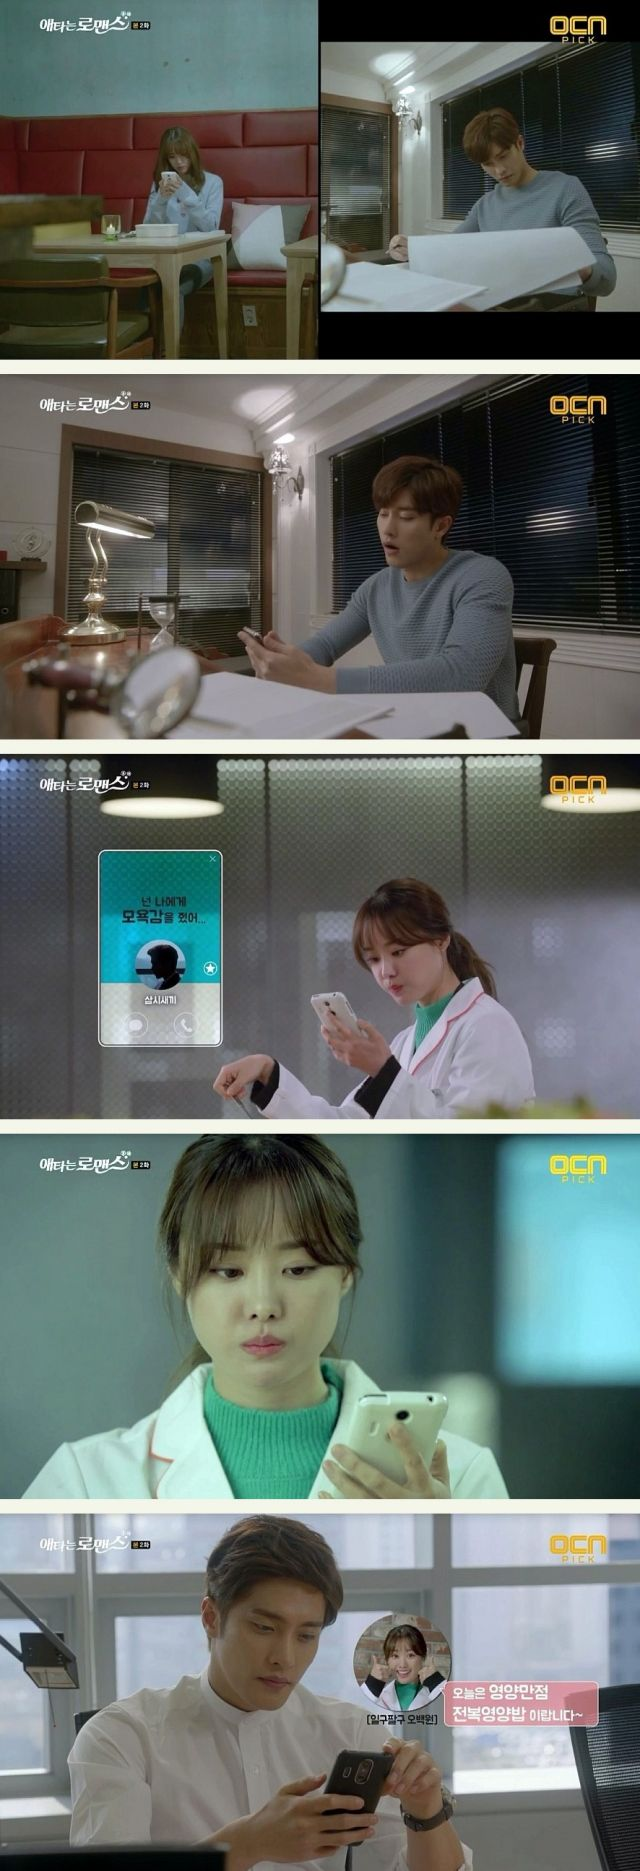 [Spoiler] Added episode 2 captures for the Korean drama 'My Secret Romance'